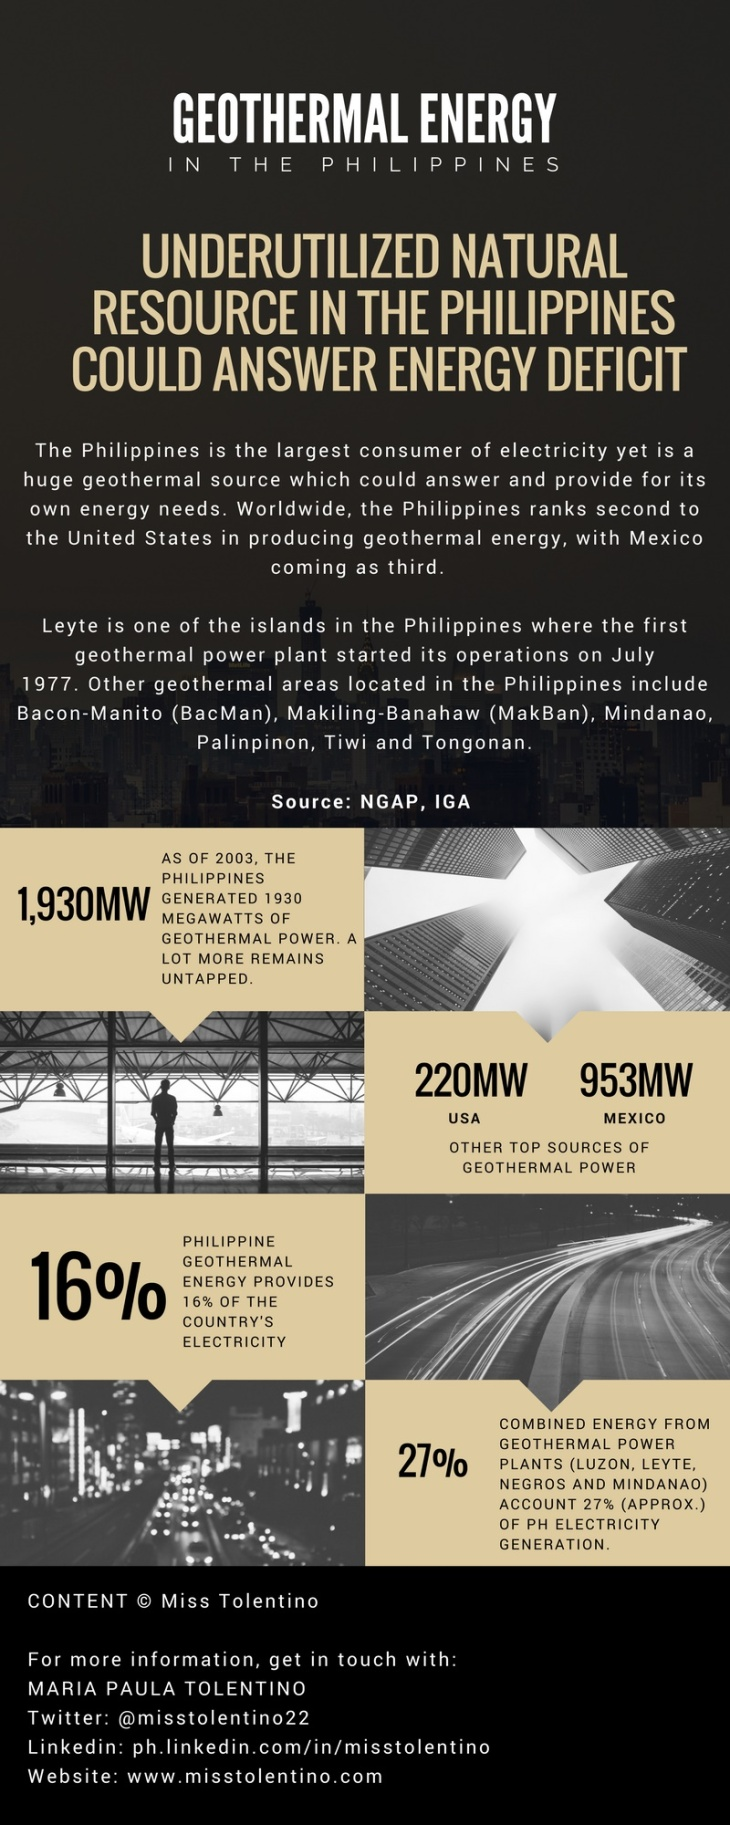 geothermal-energy-in-philippines_mpat_02012017